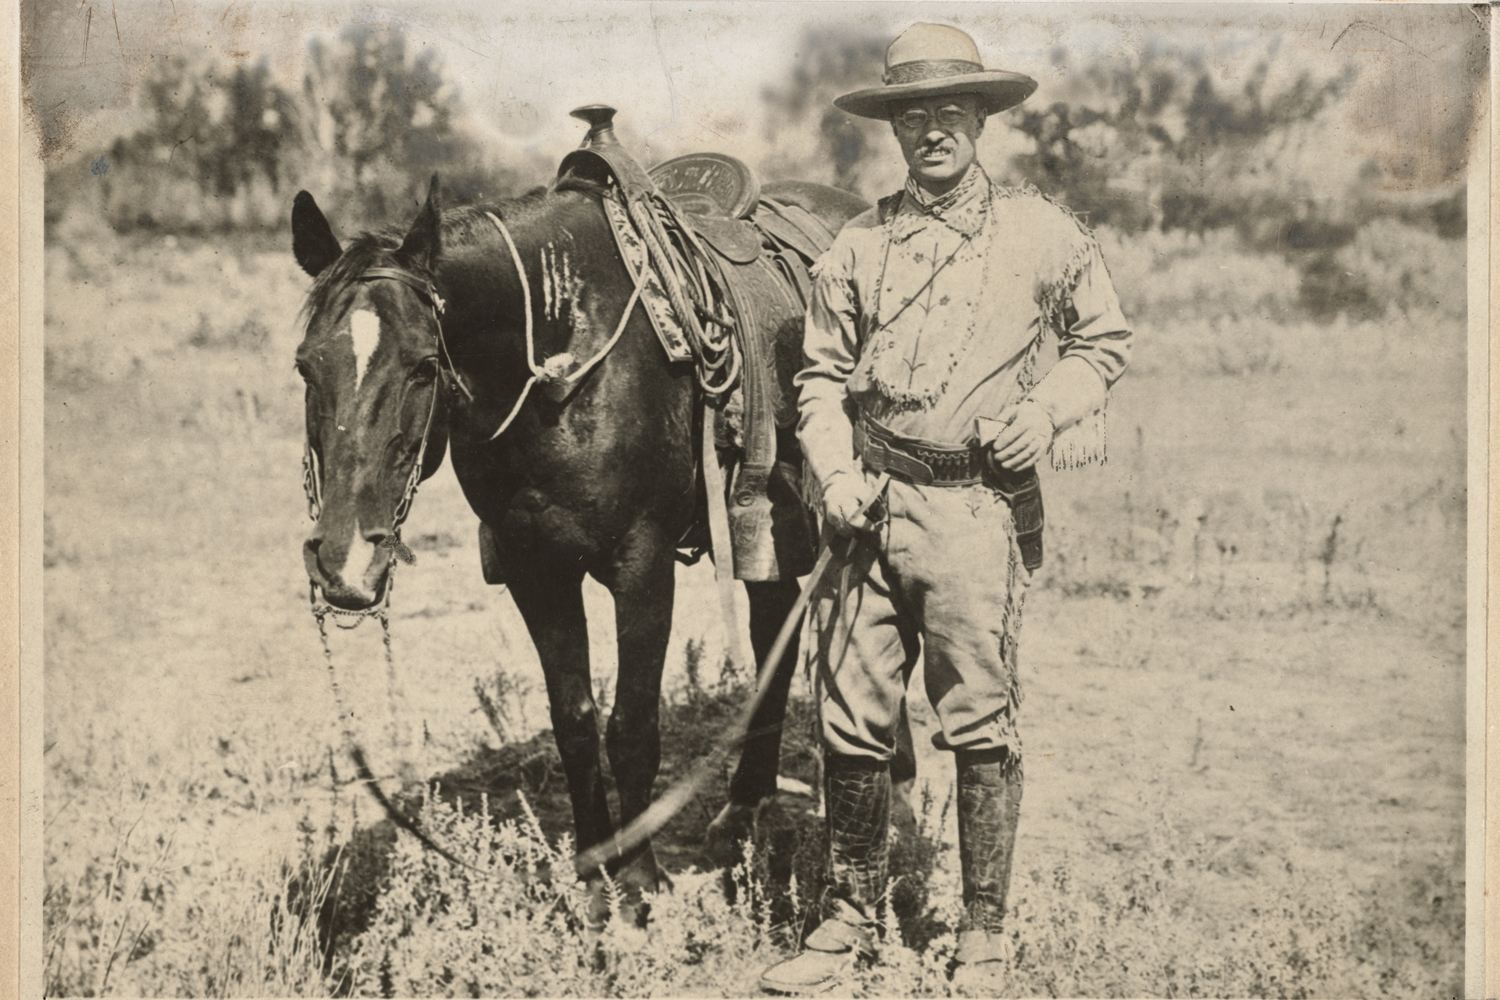 Cattle, Cowboys And Change In The Old West | On Point